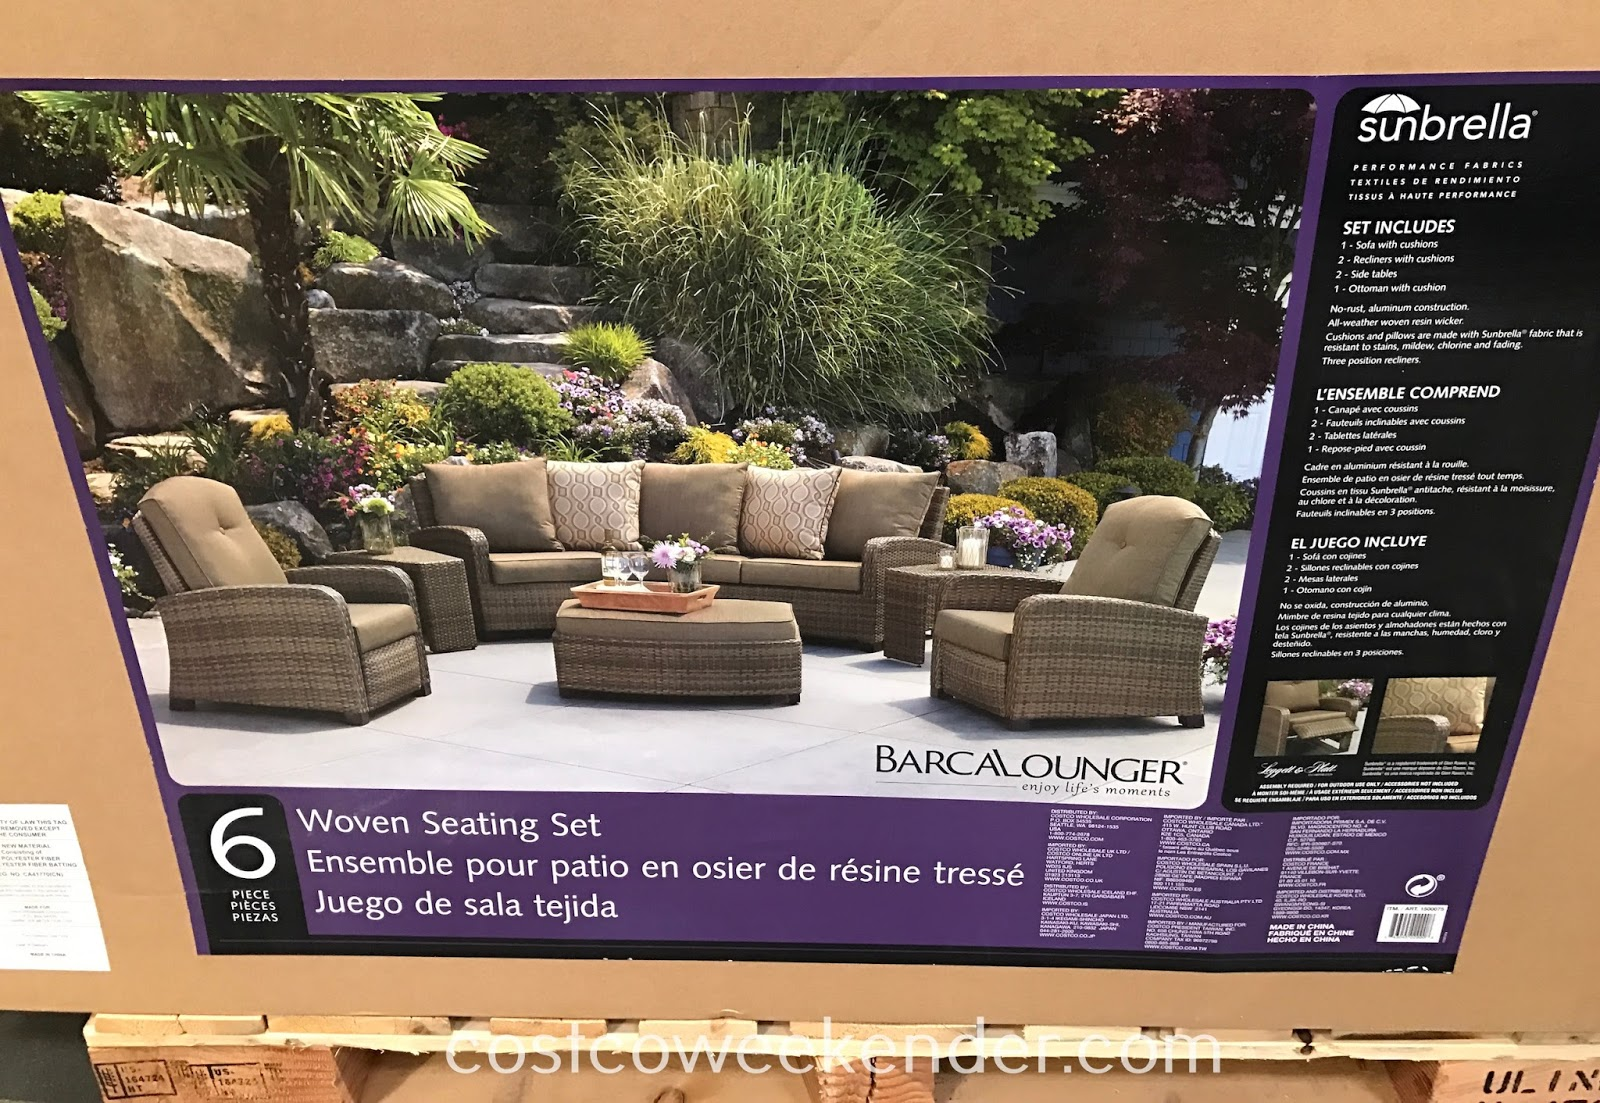 Costco 1500075 - Enjoy the traditional design of wicker with the strength of the aluminum frame with the Barcalounger Woven Theater Seating Set